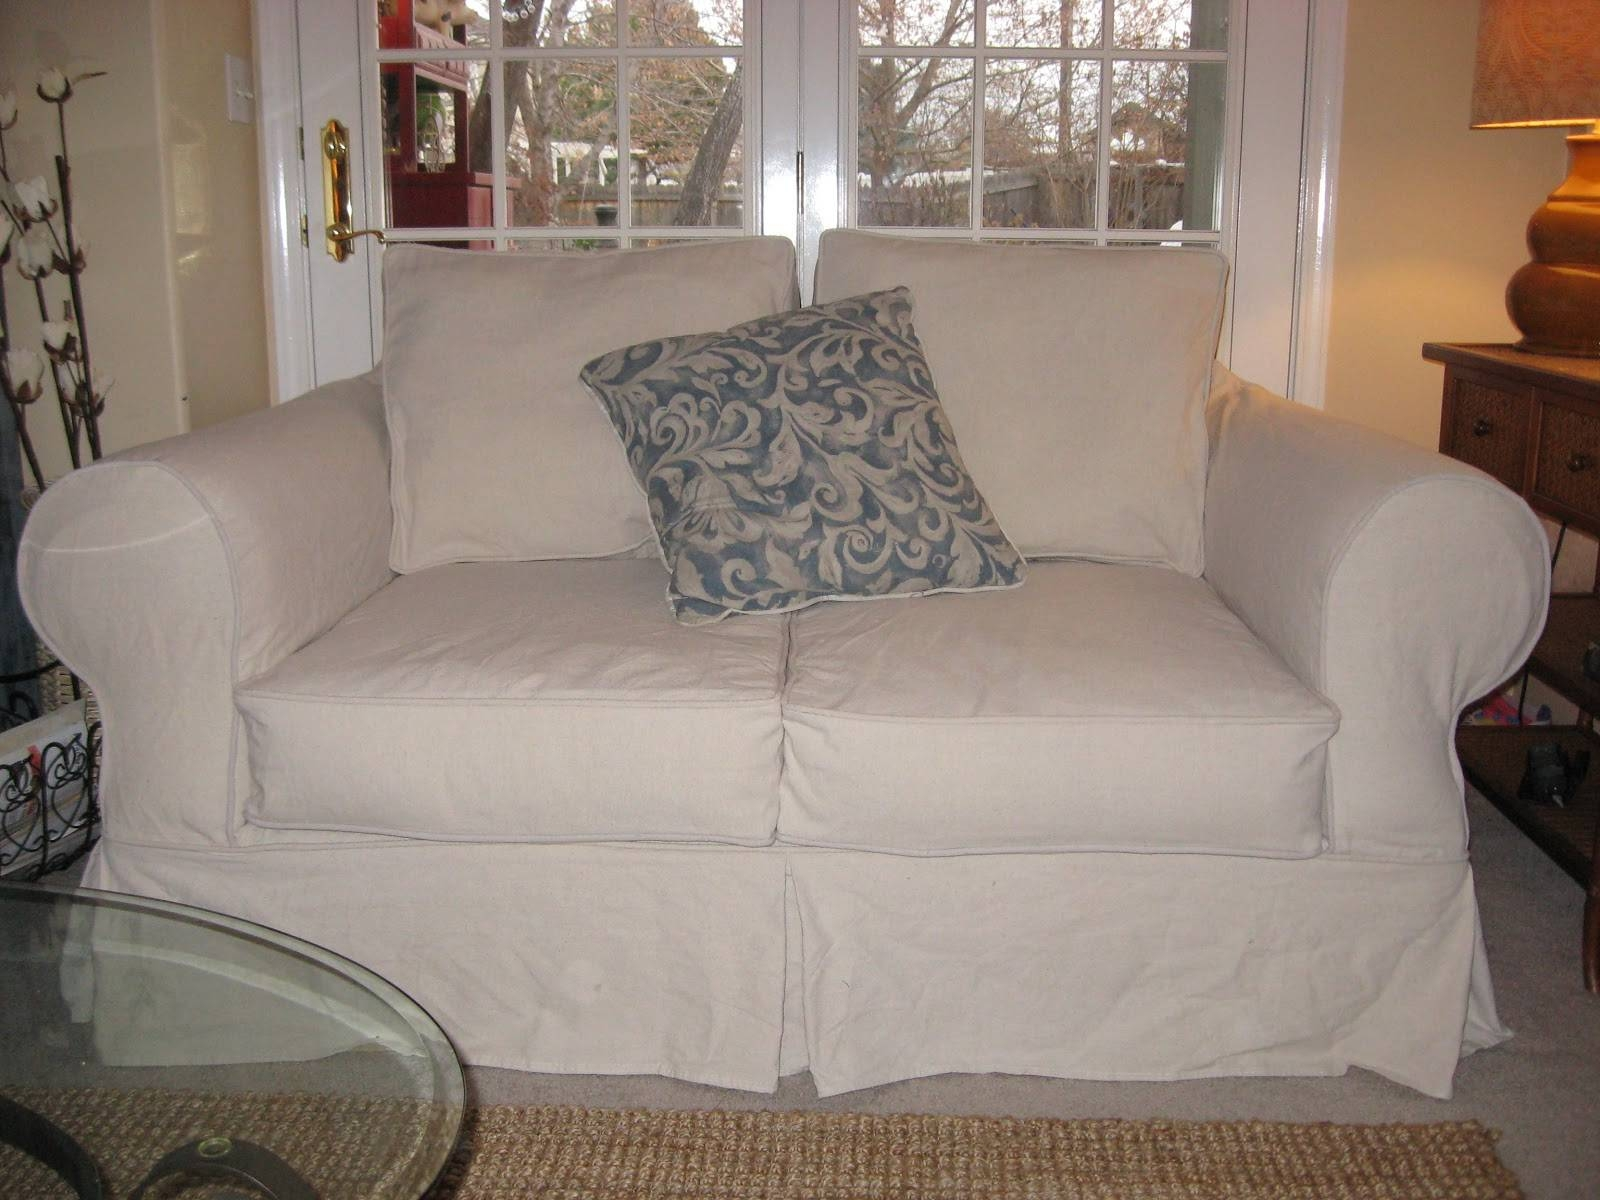 Furniture: Couch Covers At Walmart To Make Your Furniture Stylish For Slipcovers For Chairs And Sofas (View 6 of 15)